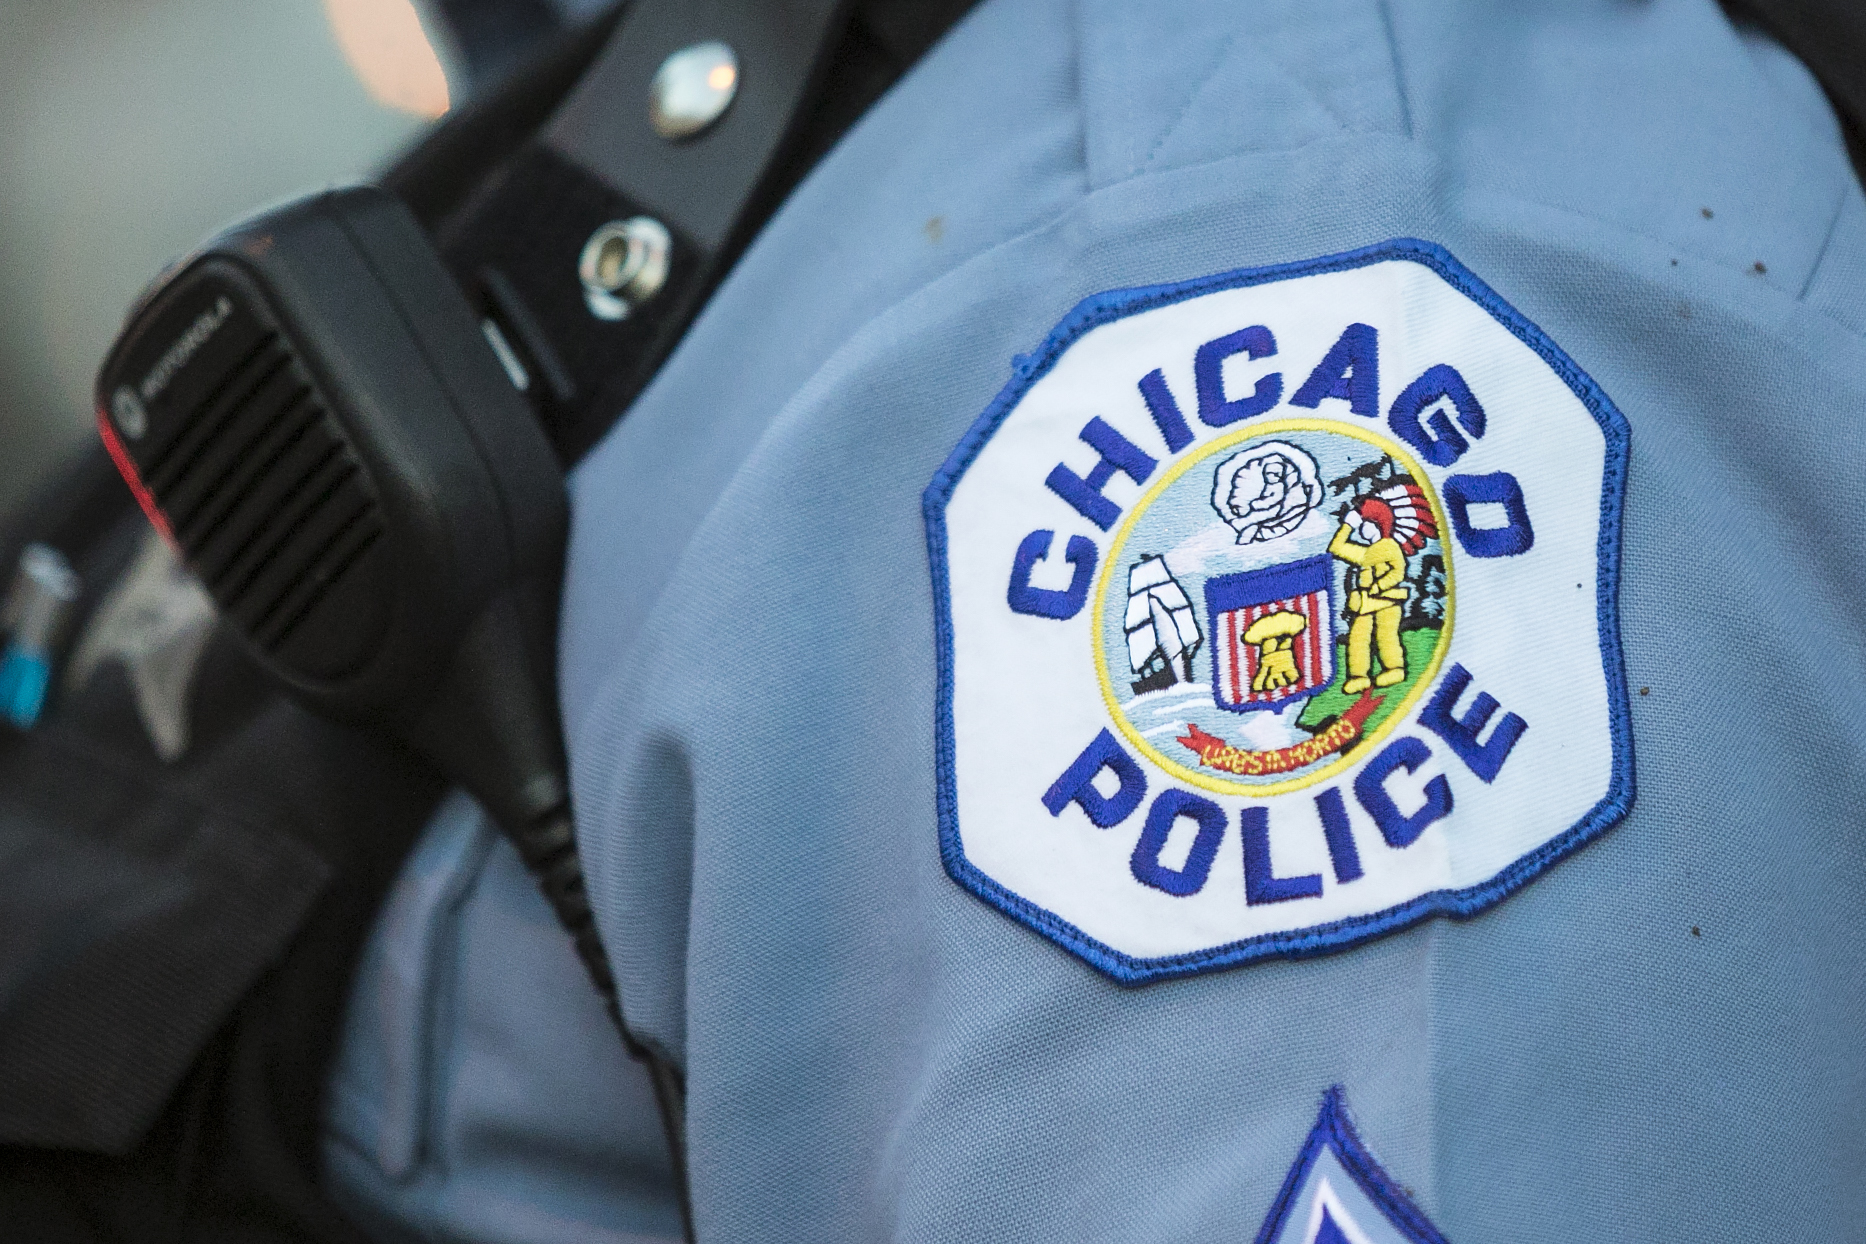 There are now 89 cases of the coronavirus in the Chicago Police Department.